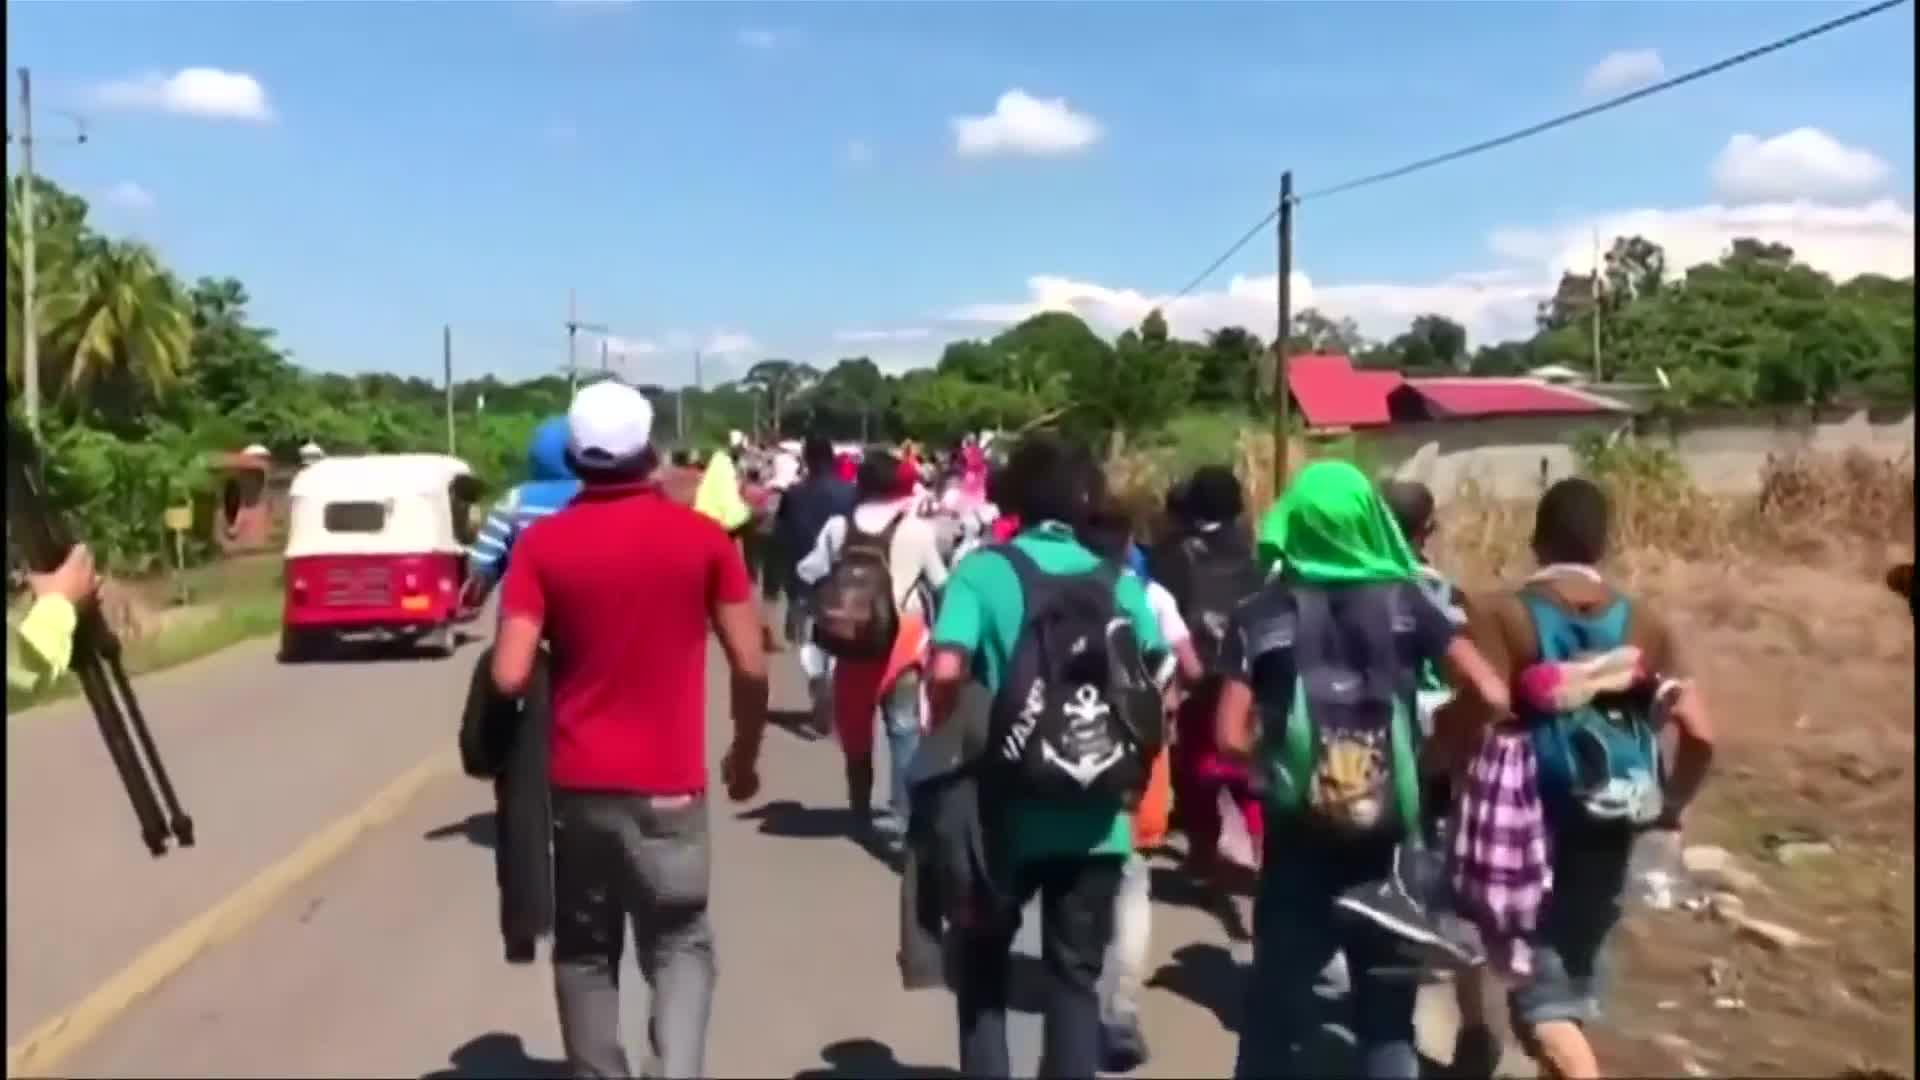 National News - Honduran Caravaners Make It Into Southern Mexico